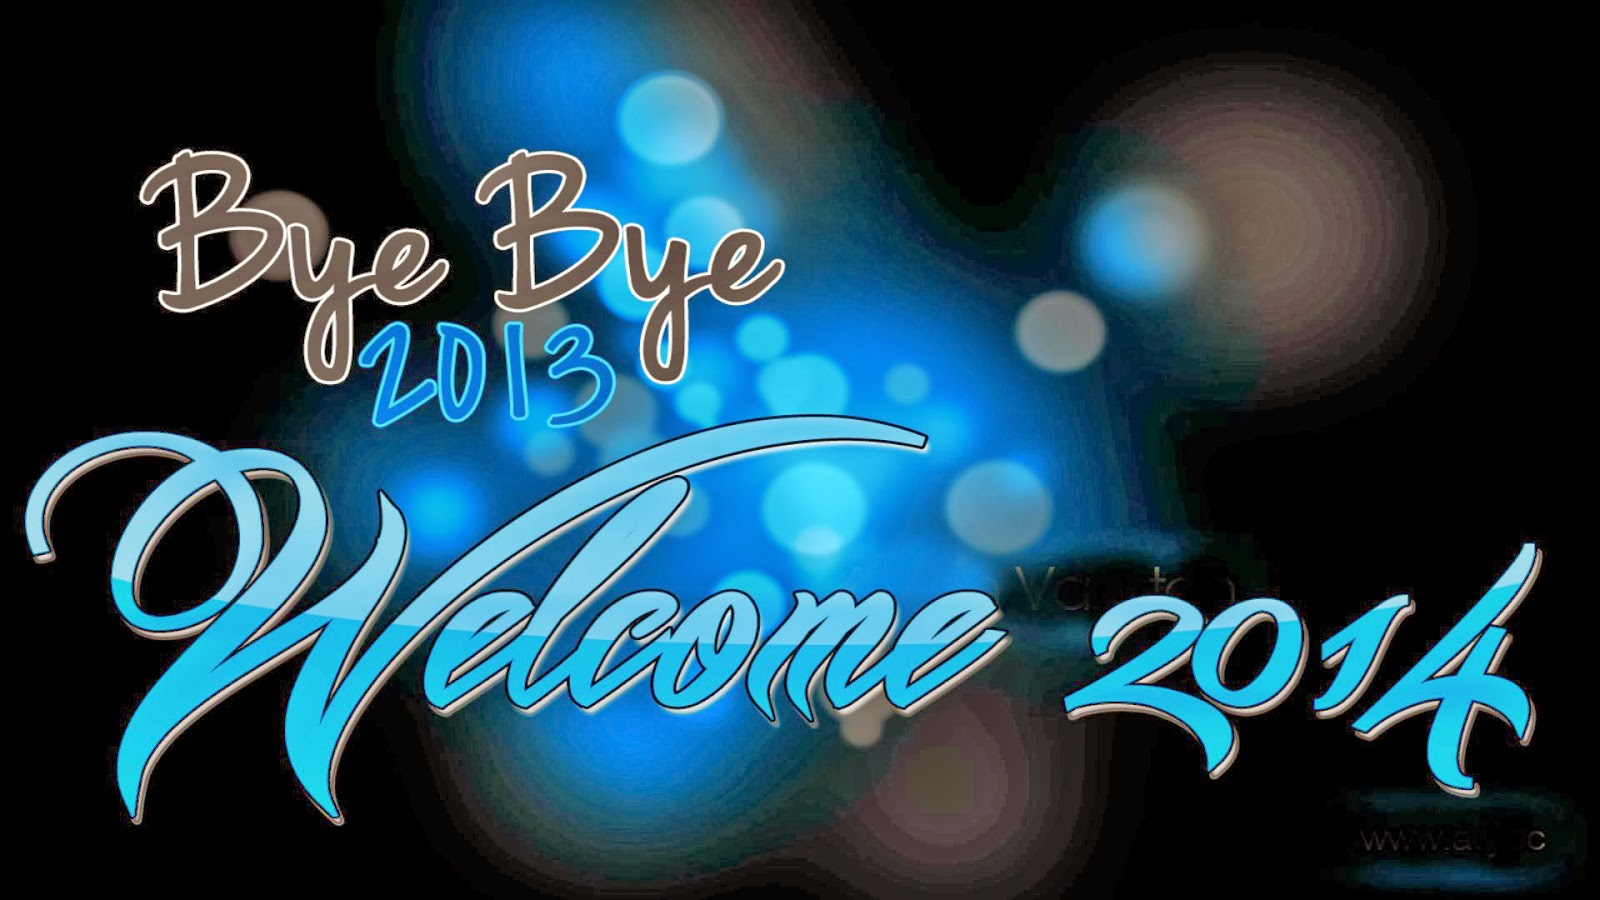 Animated Happy New Year 2014.9 Happy New Year 2014 Animated Images 2014